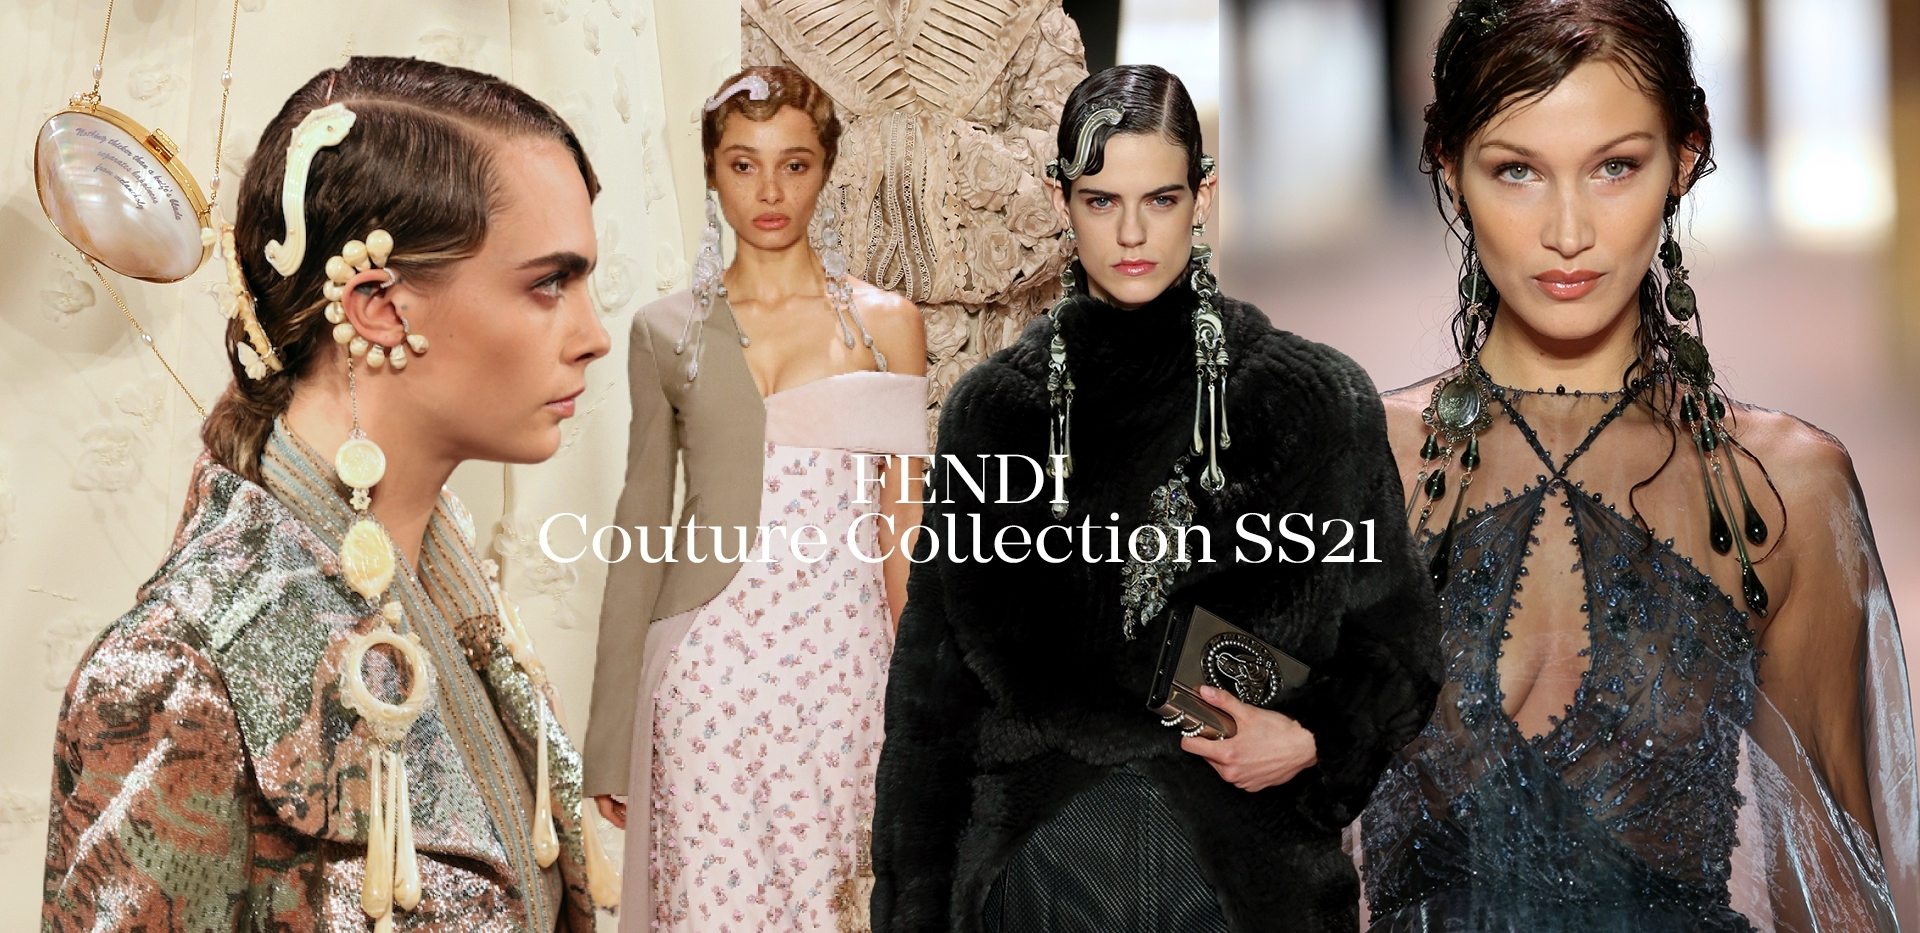 FENDI Couture Collection SS21